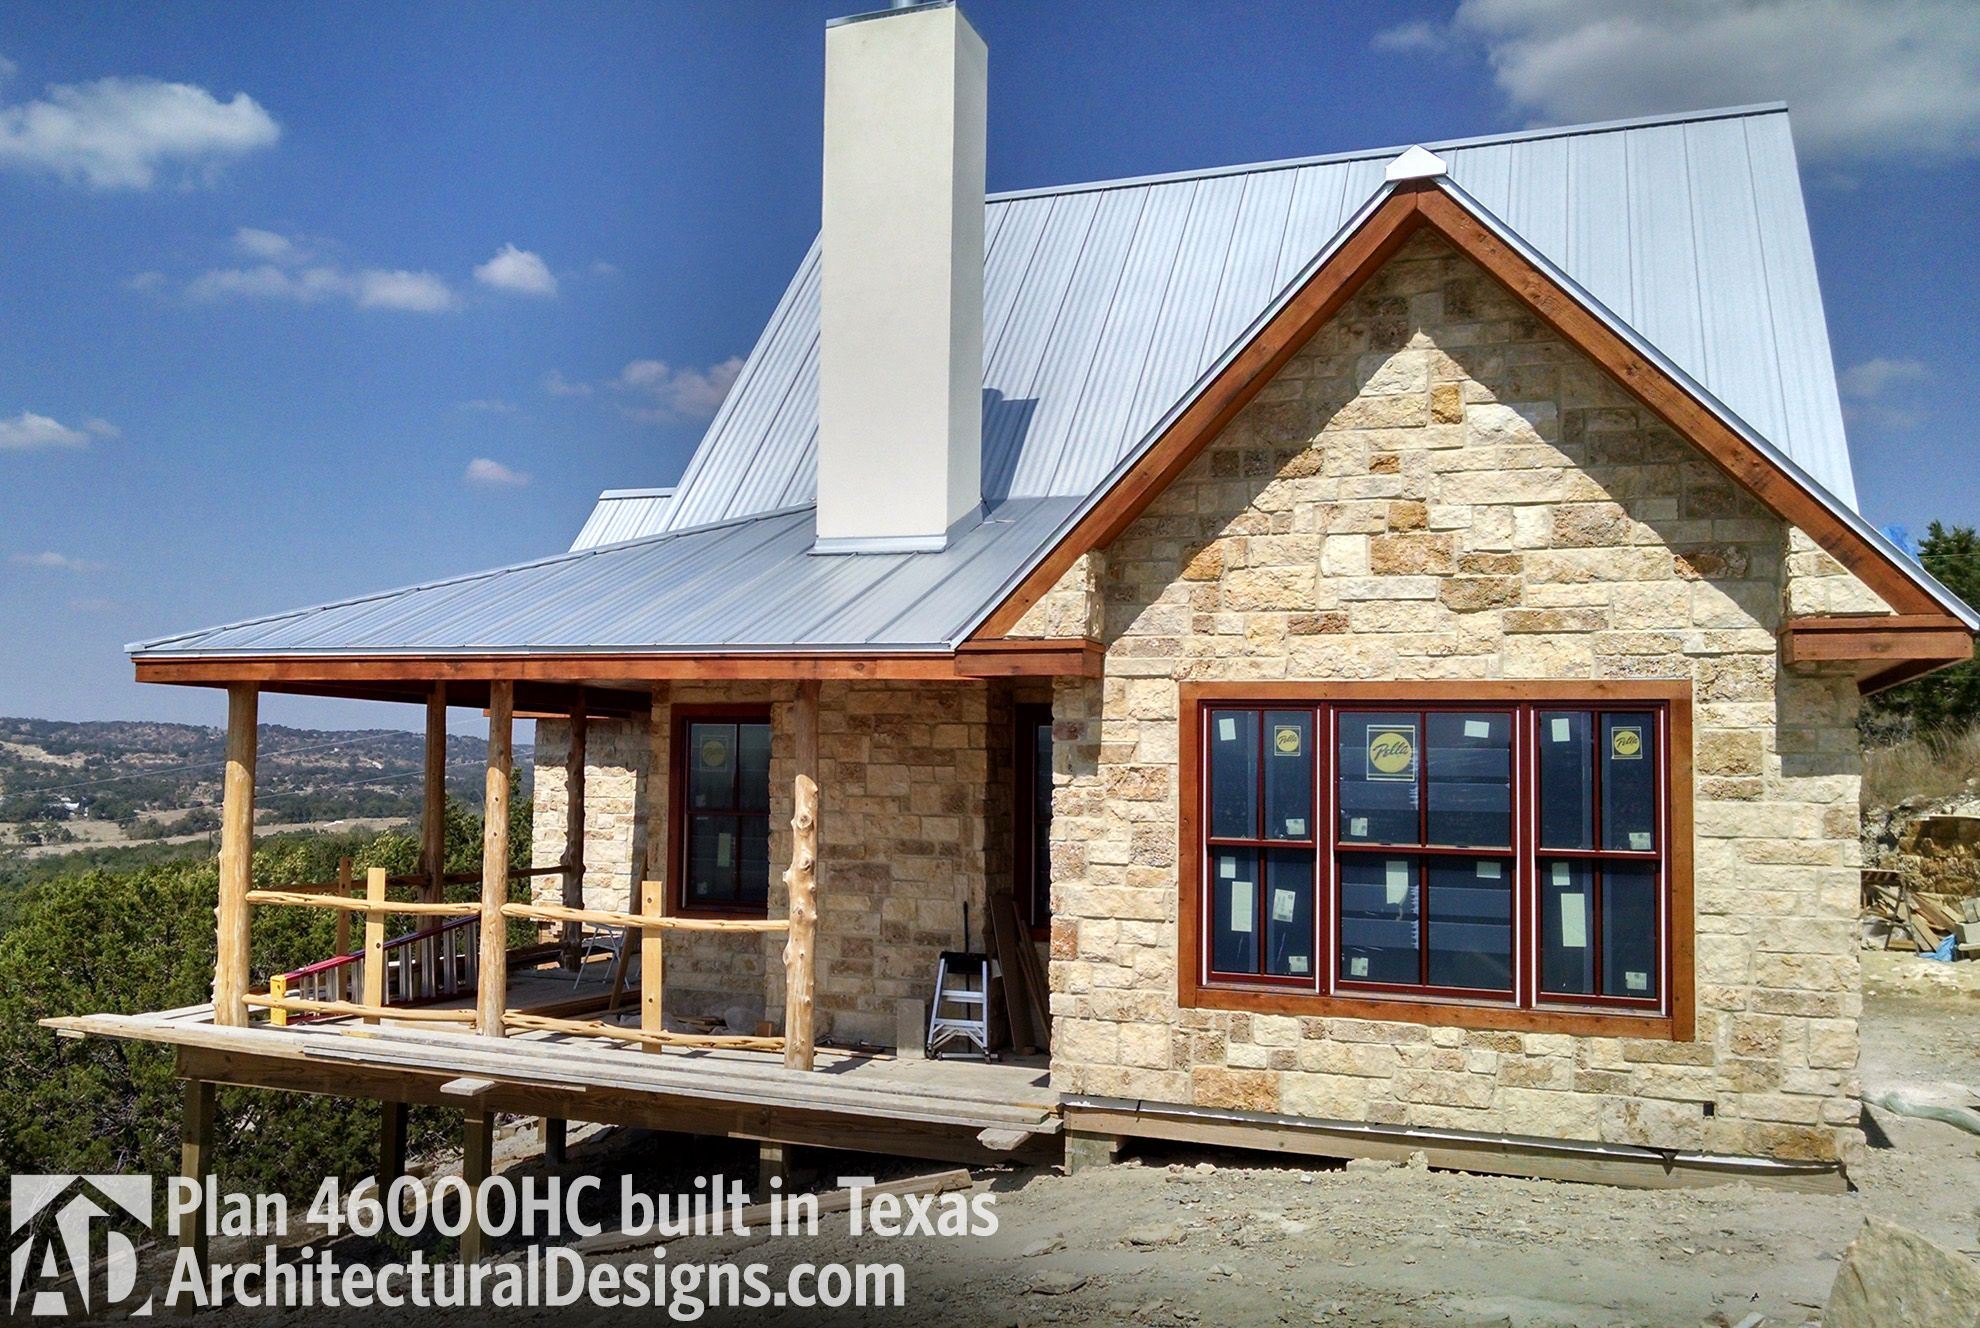 Plan 46000HC Hill Country Classic Cottage house plans